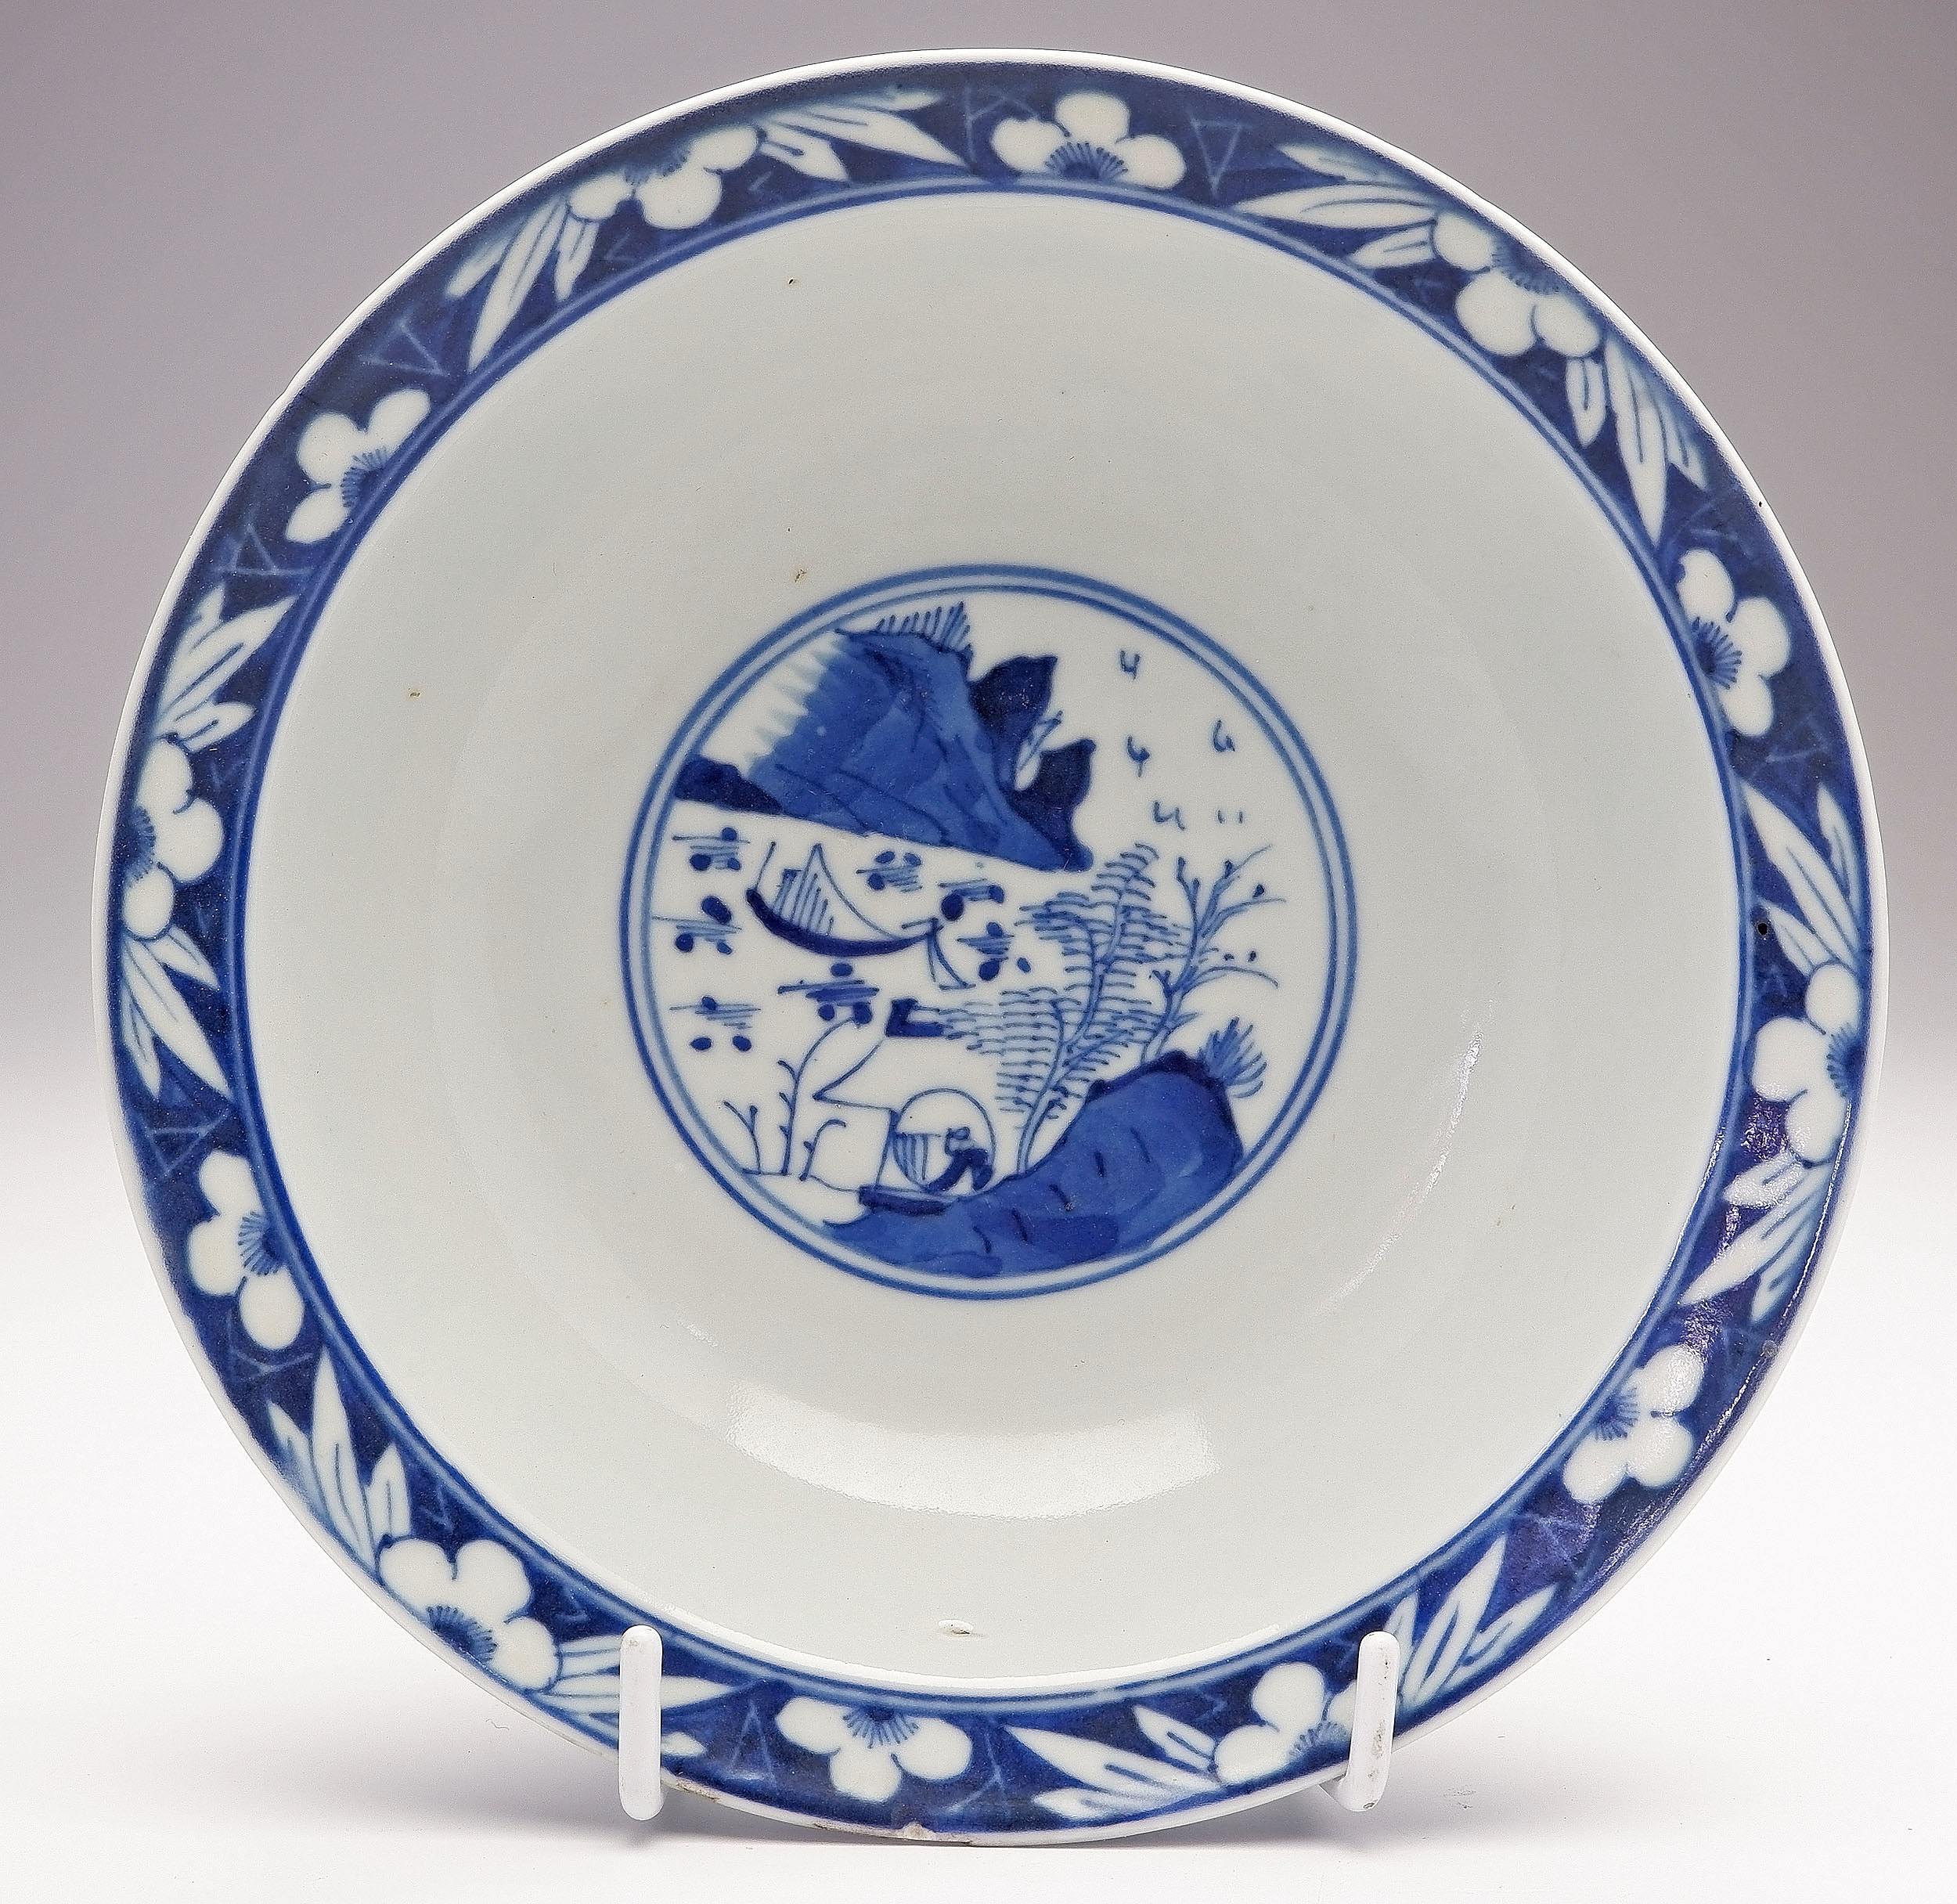 'Chinese Qing Dynasty Blue and White Three Sages Bowl, Daoguang Period 1821-1850'